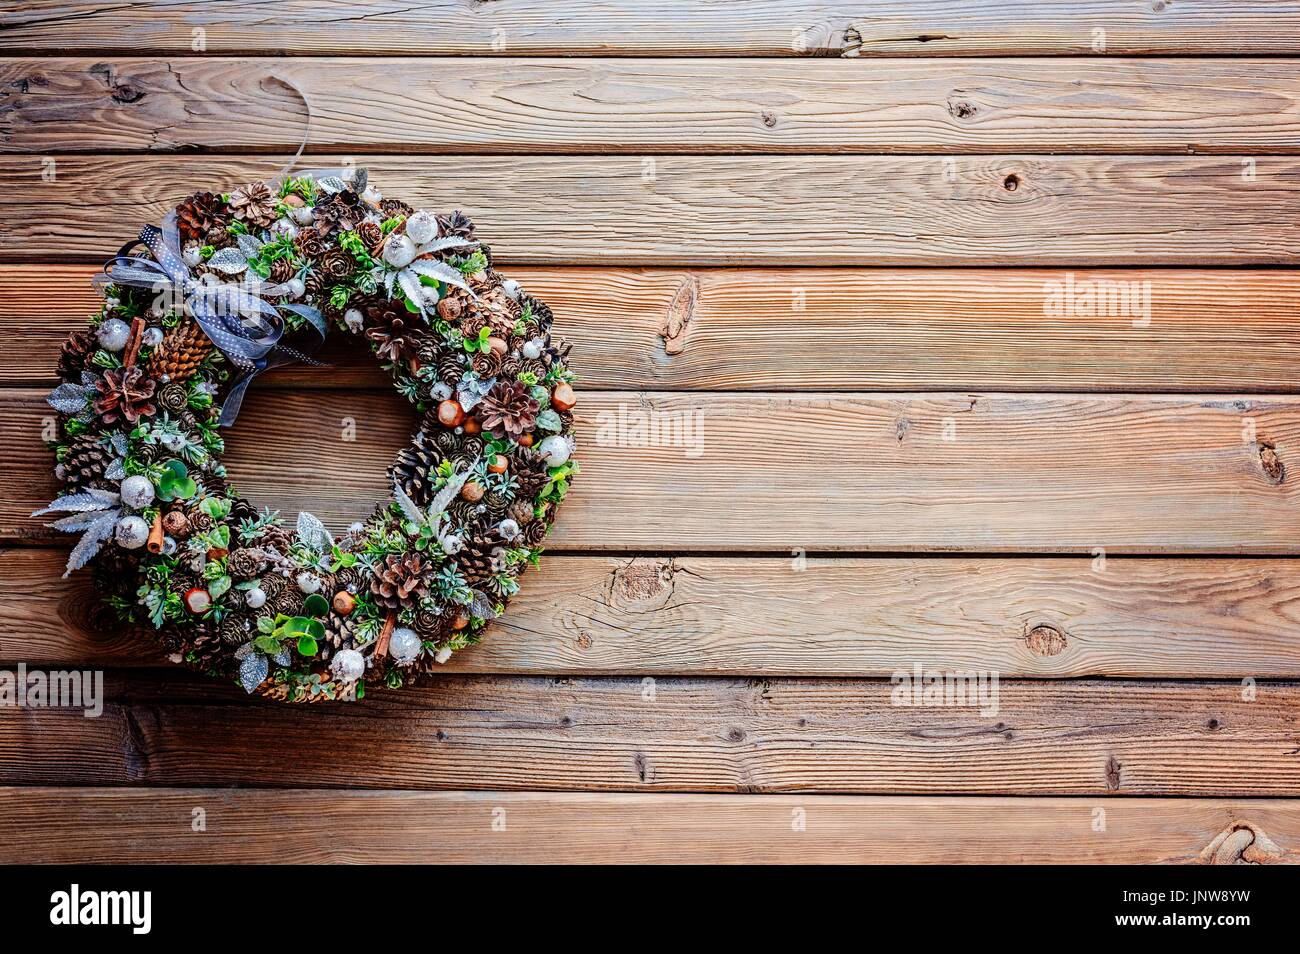 Christmas Wreath On Wooden Rustic Background Space For Text Merry